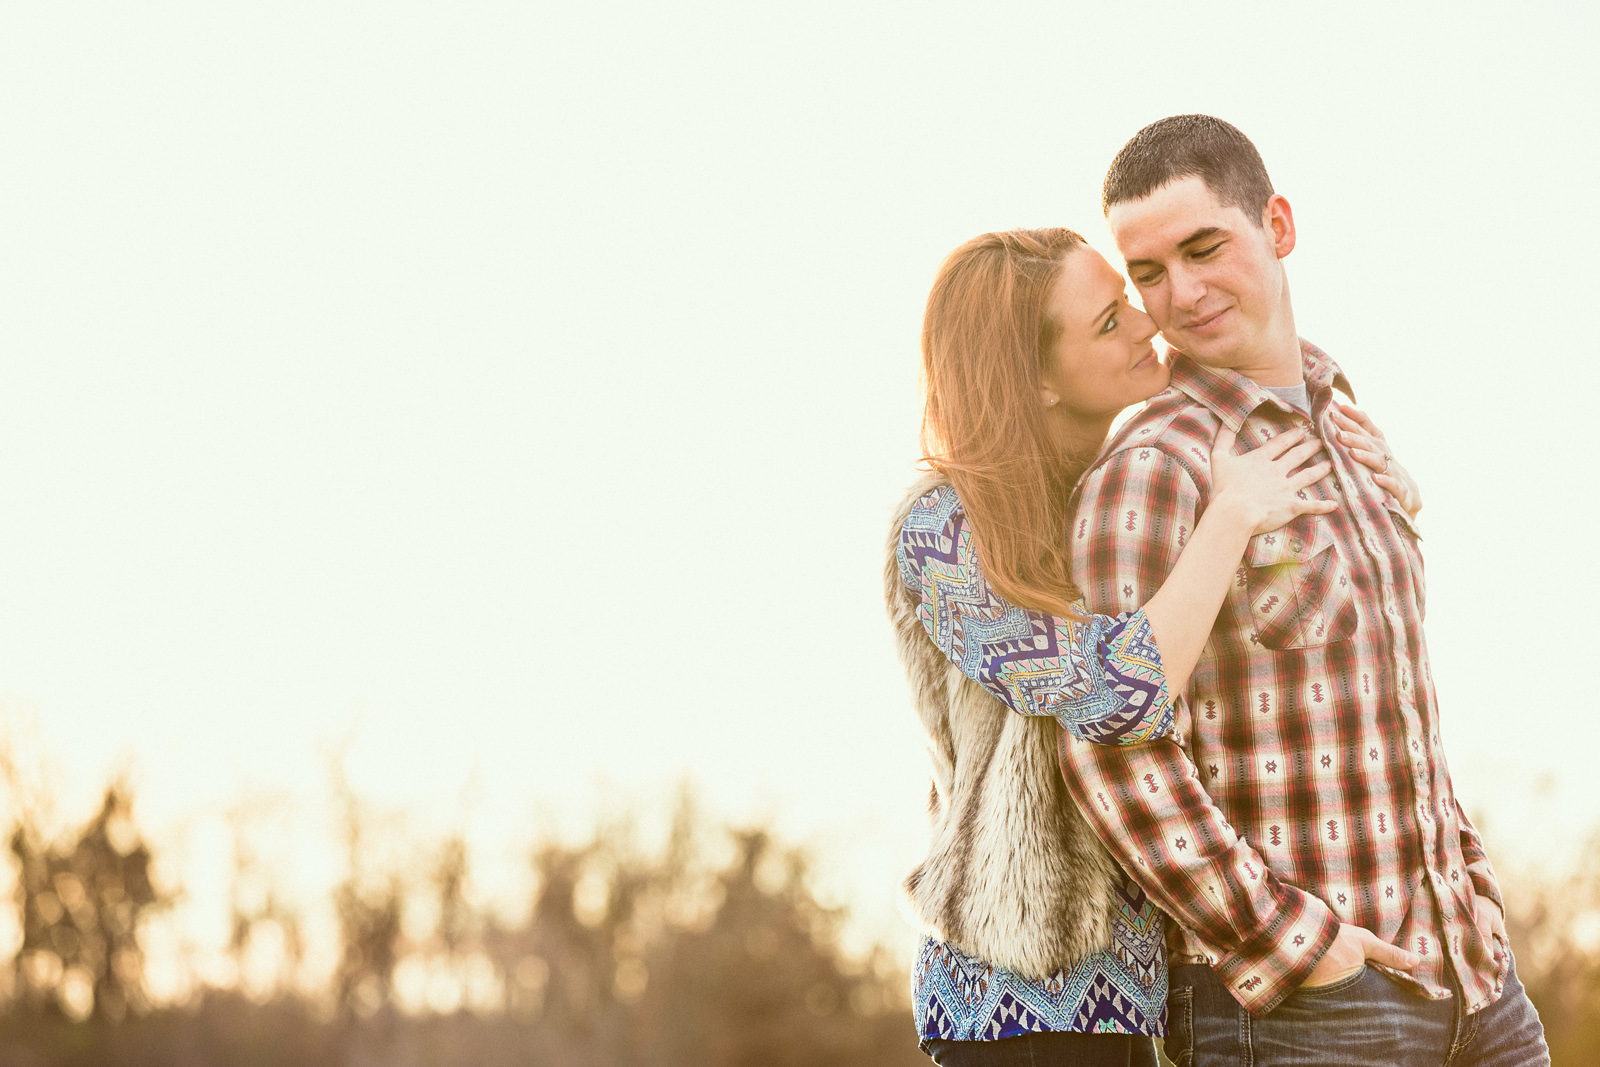 Oldani-Photography-St-Charles-August-A-Busch-Memorial-Area-Engagement-Session-engagement-photos_20141128_165417-2.jpg